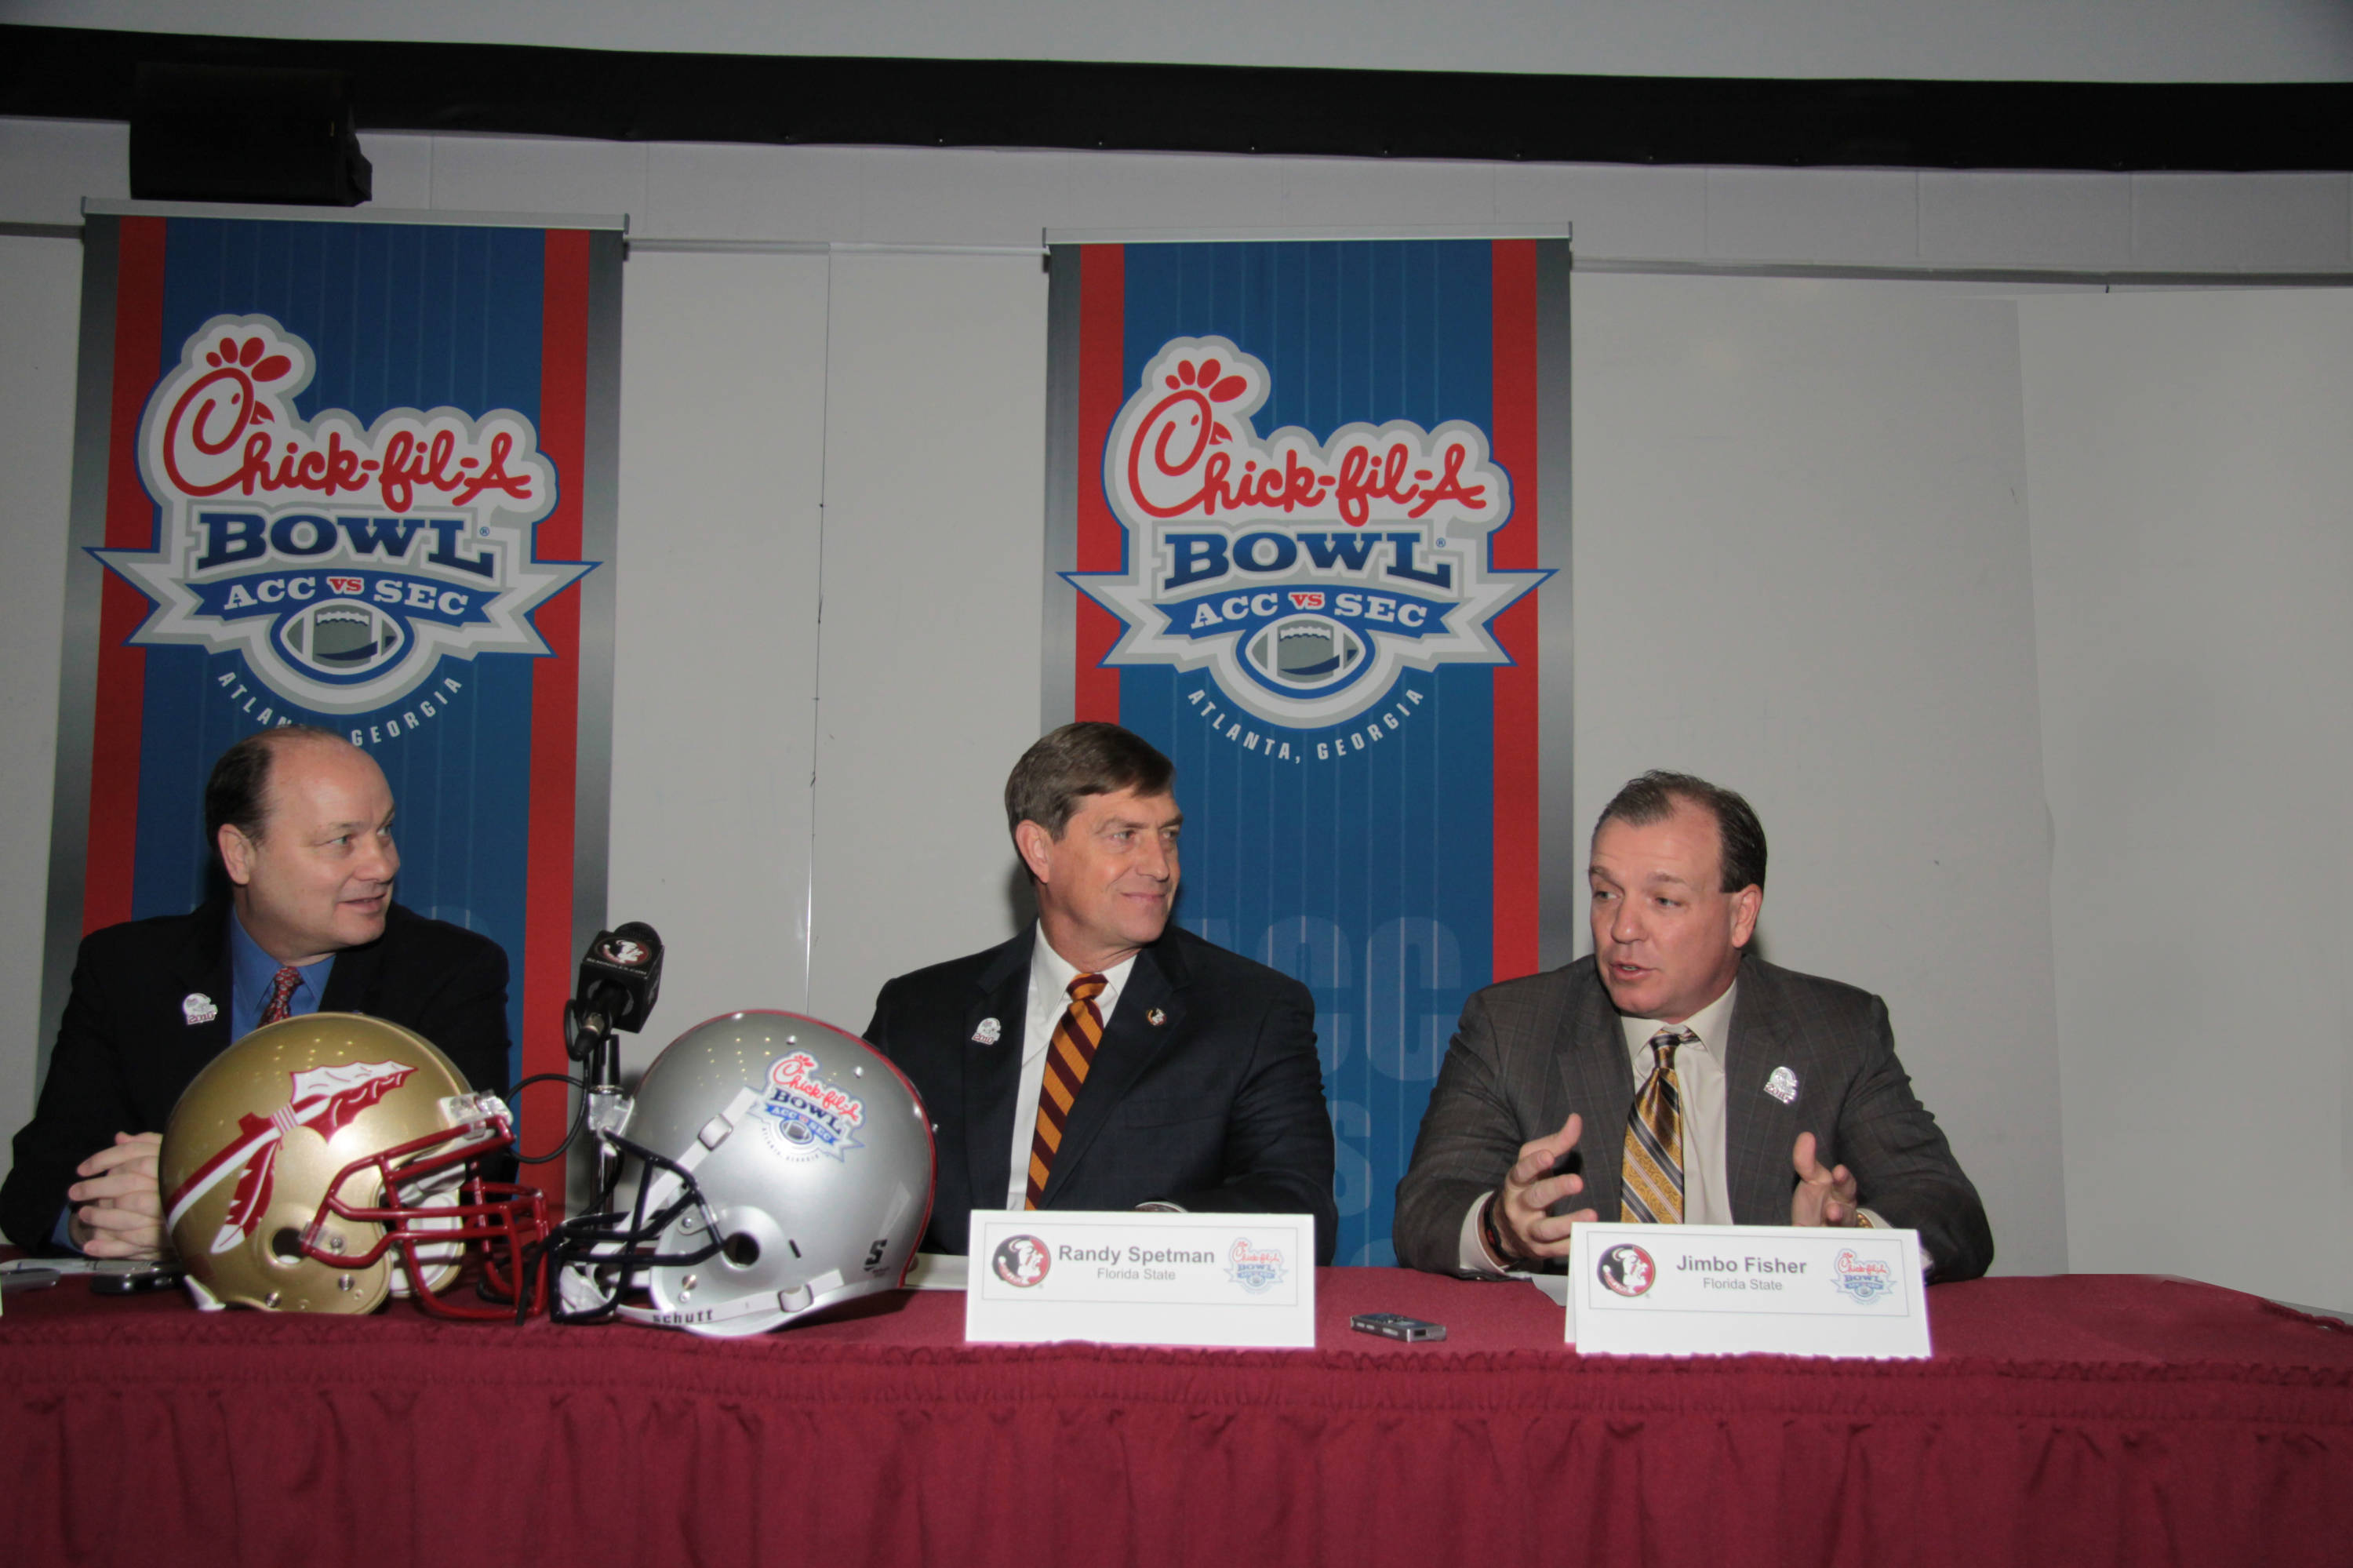 Head Coach Jimbo Fisher tells the media how pleased he is that the Seminoles will play in the Chick-Fil-A Bowl.